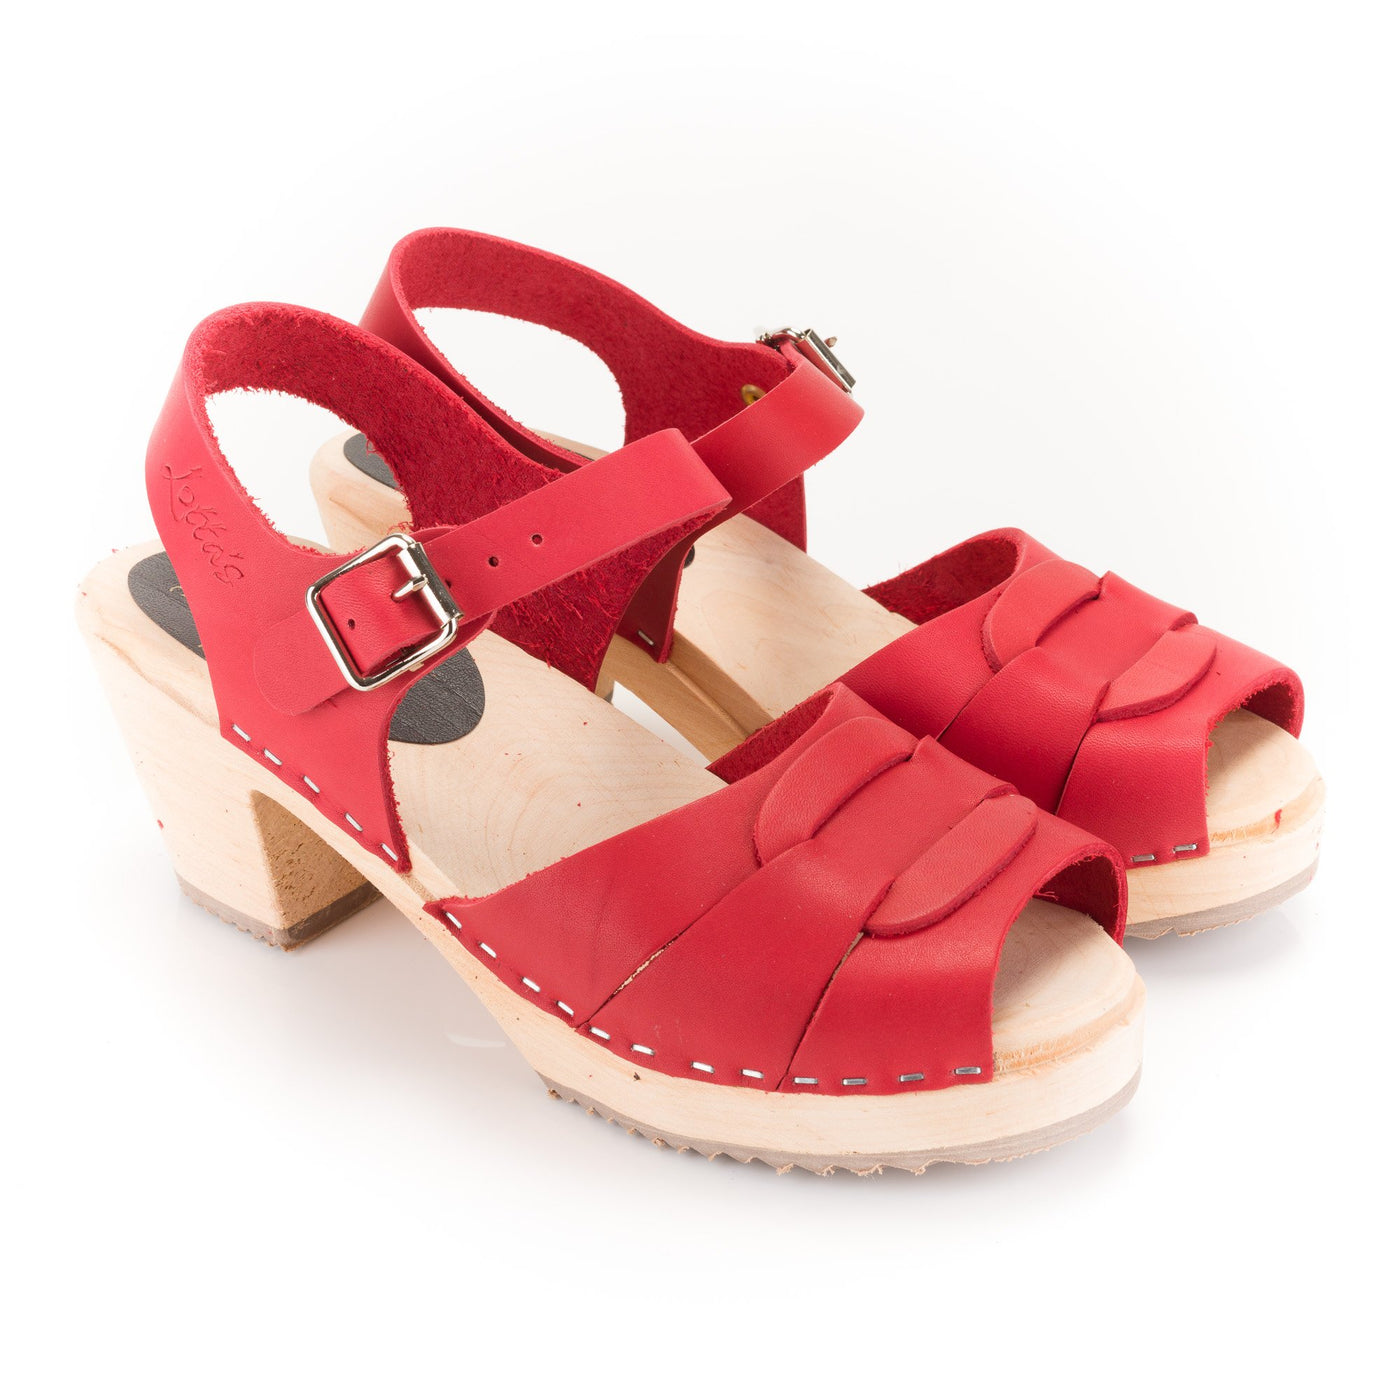 Red Peep Toe Clogs by Lotta from Stockholm at Dollydagger